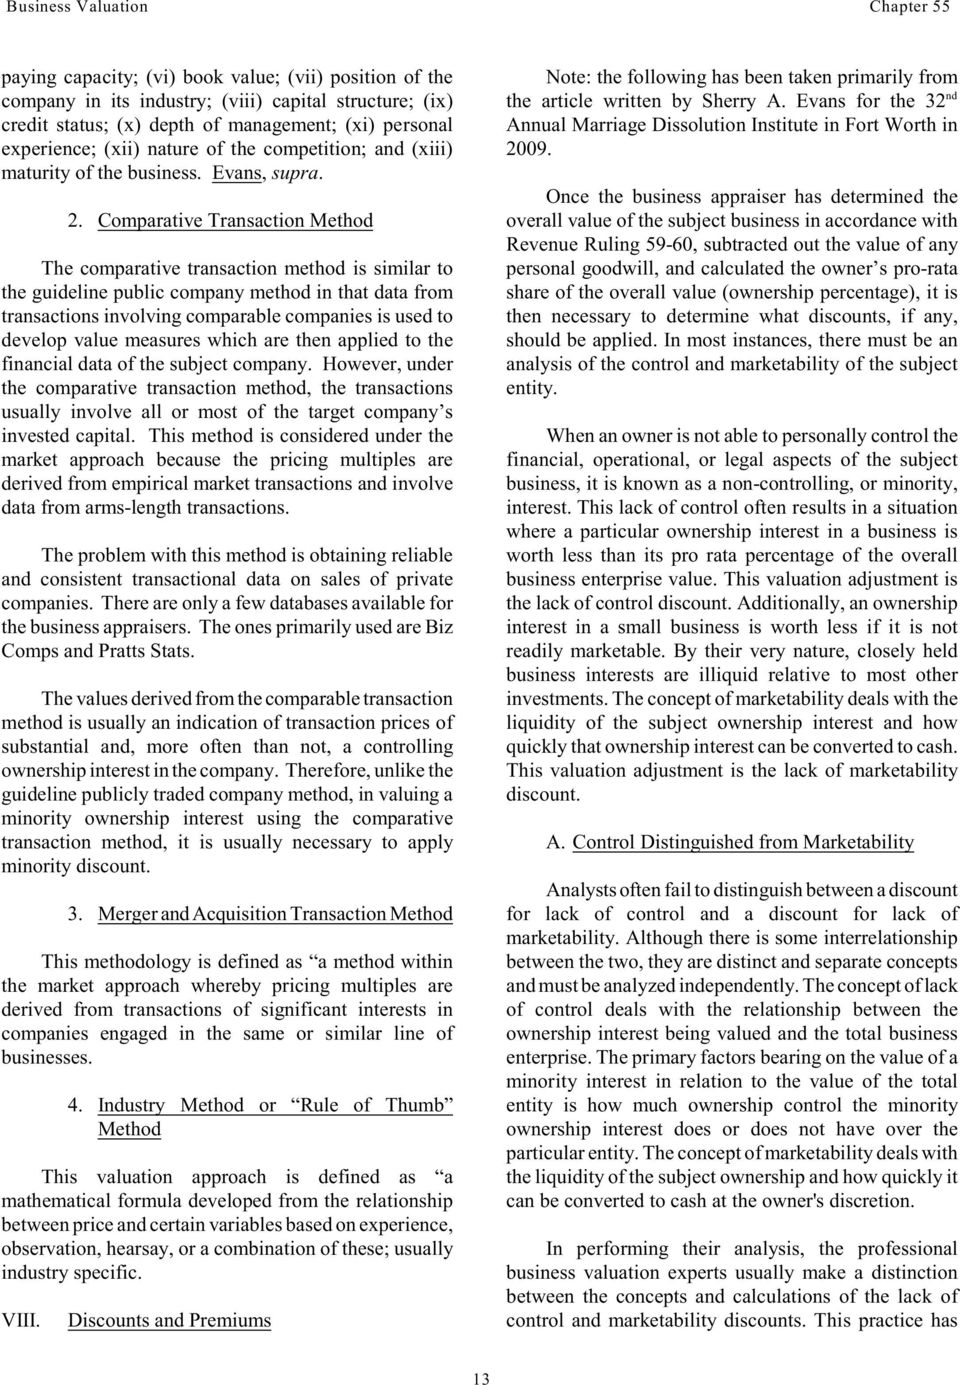 Business Valuation Panelists Pdf Free Download